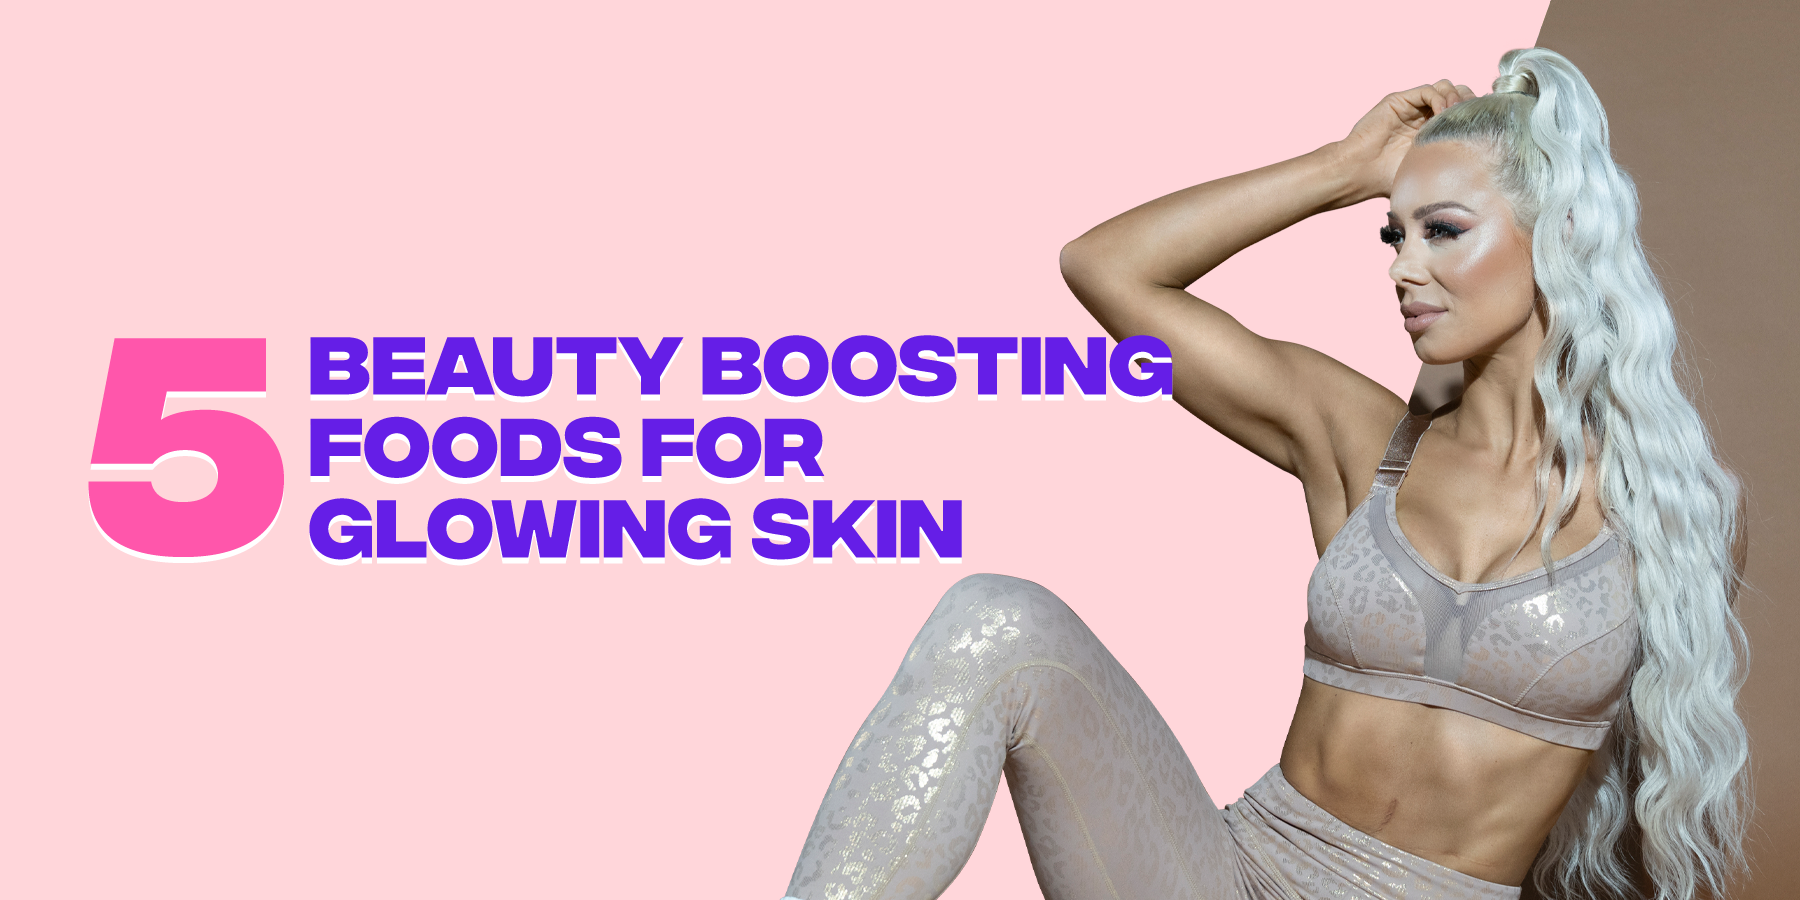 5 Beauty Boosting Foods For Glowing Skin